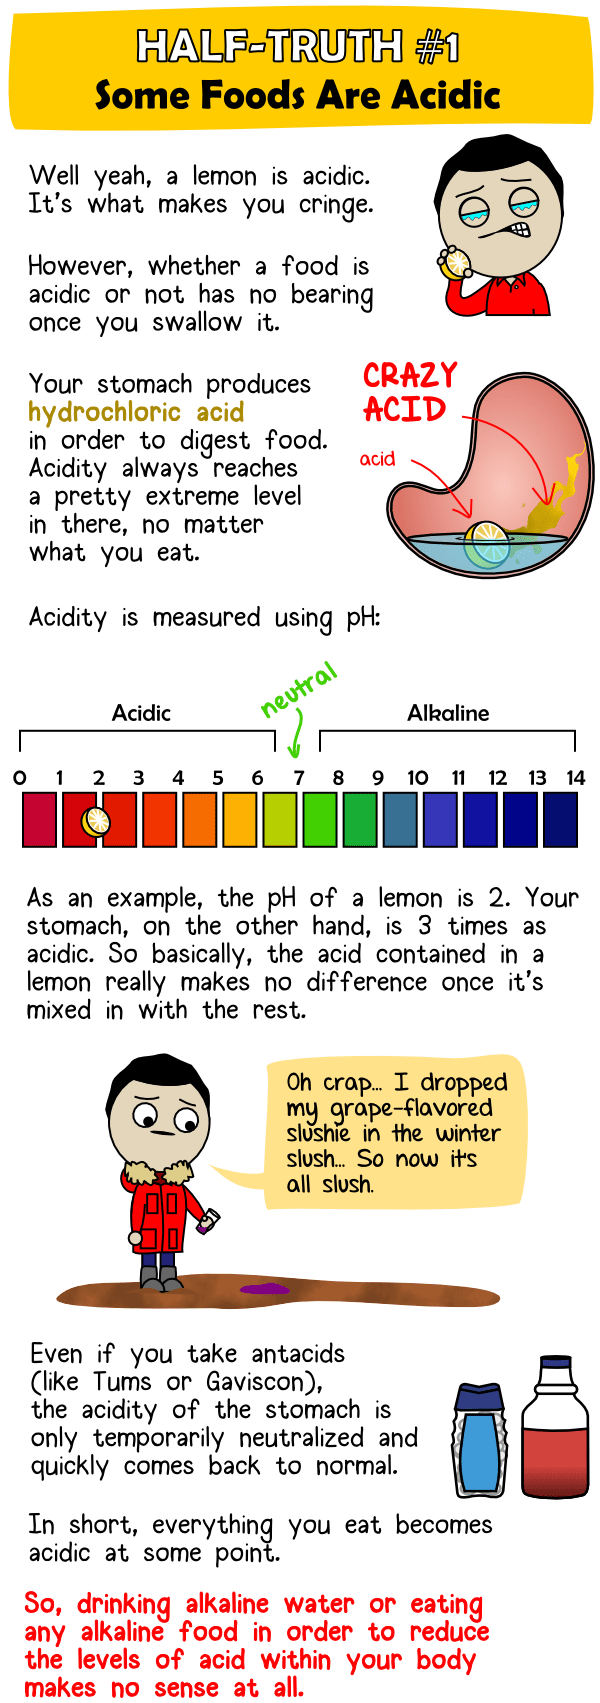 Some foods are acidic